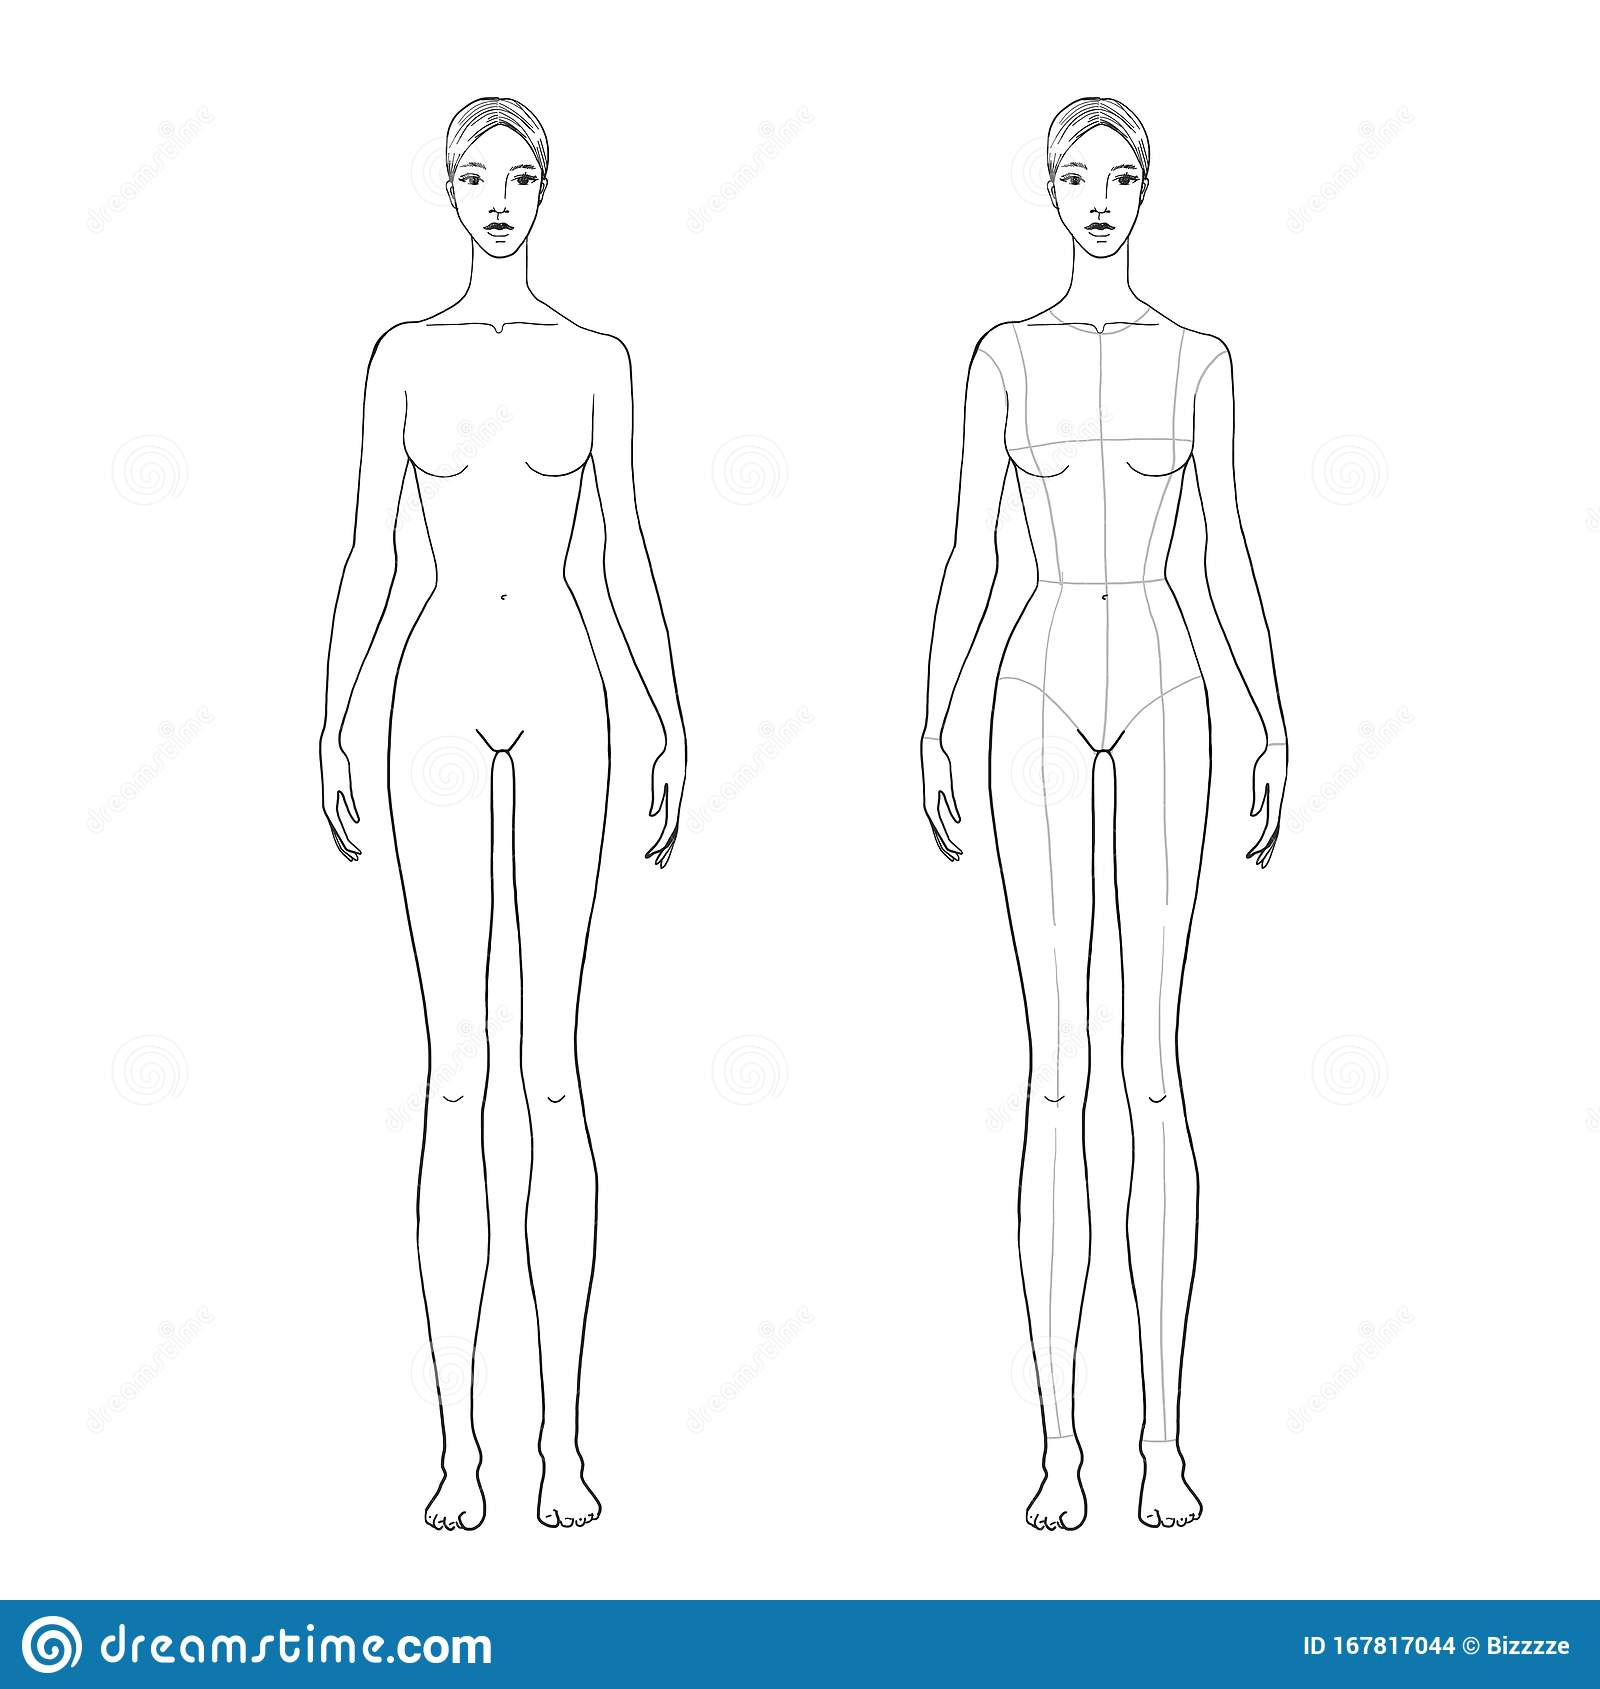 Woman S Figure Sketch For Technical Drawing With Main Lines Vector Outline Girl Model Template For Fashion Sketching Stock Vector Illustration Of Anatomy Education 167817044